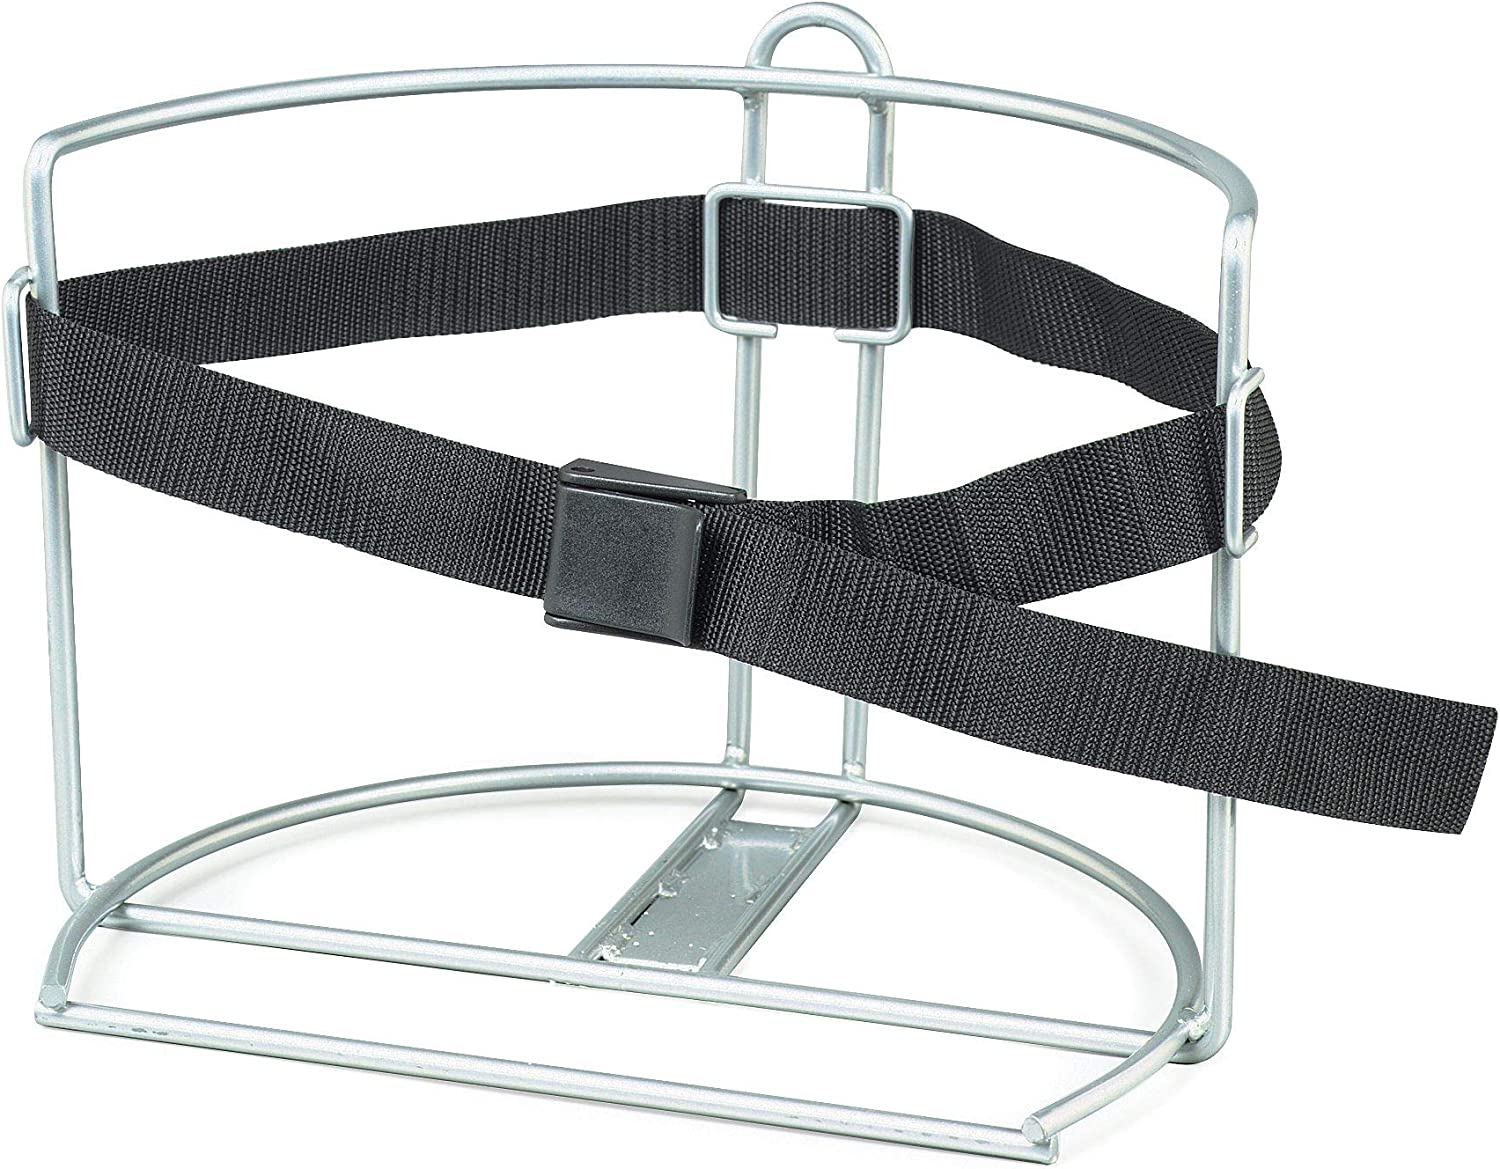 Igloo Wire Rack for 2-5 Gallon Beverage Coolers